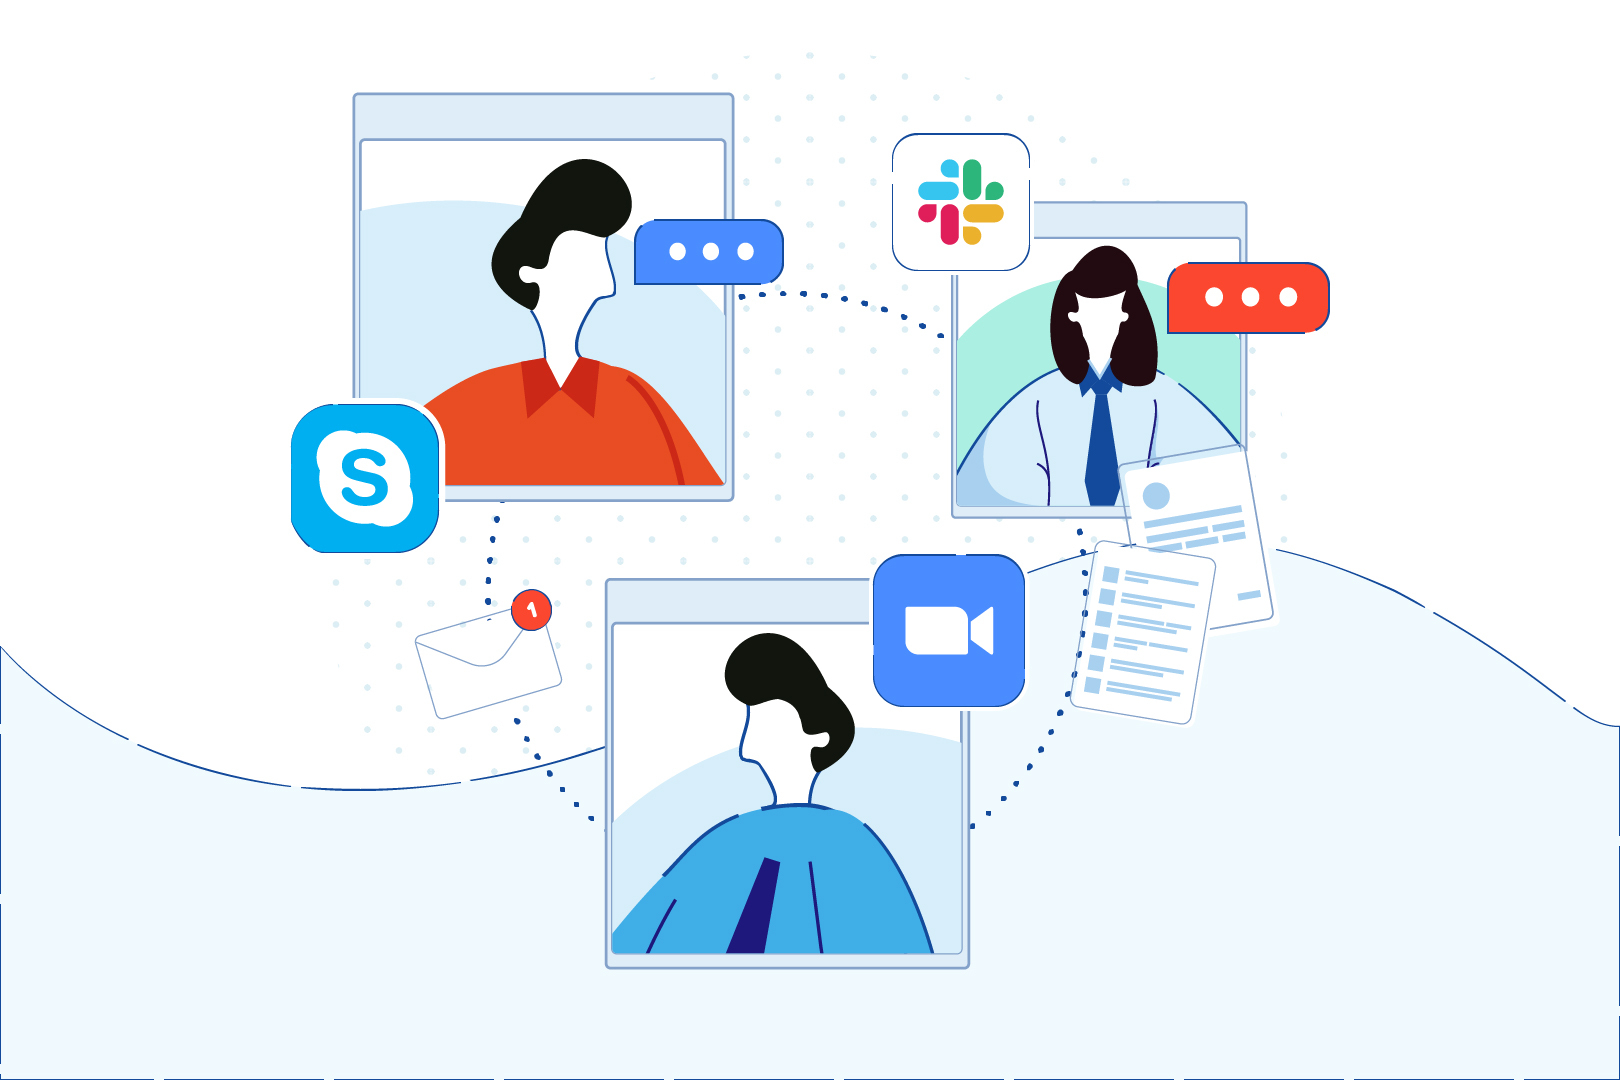 A few tips on improving remote team communication culture